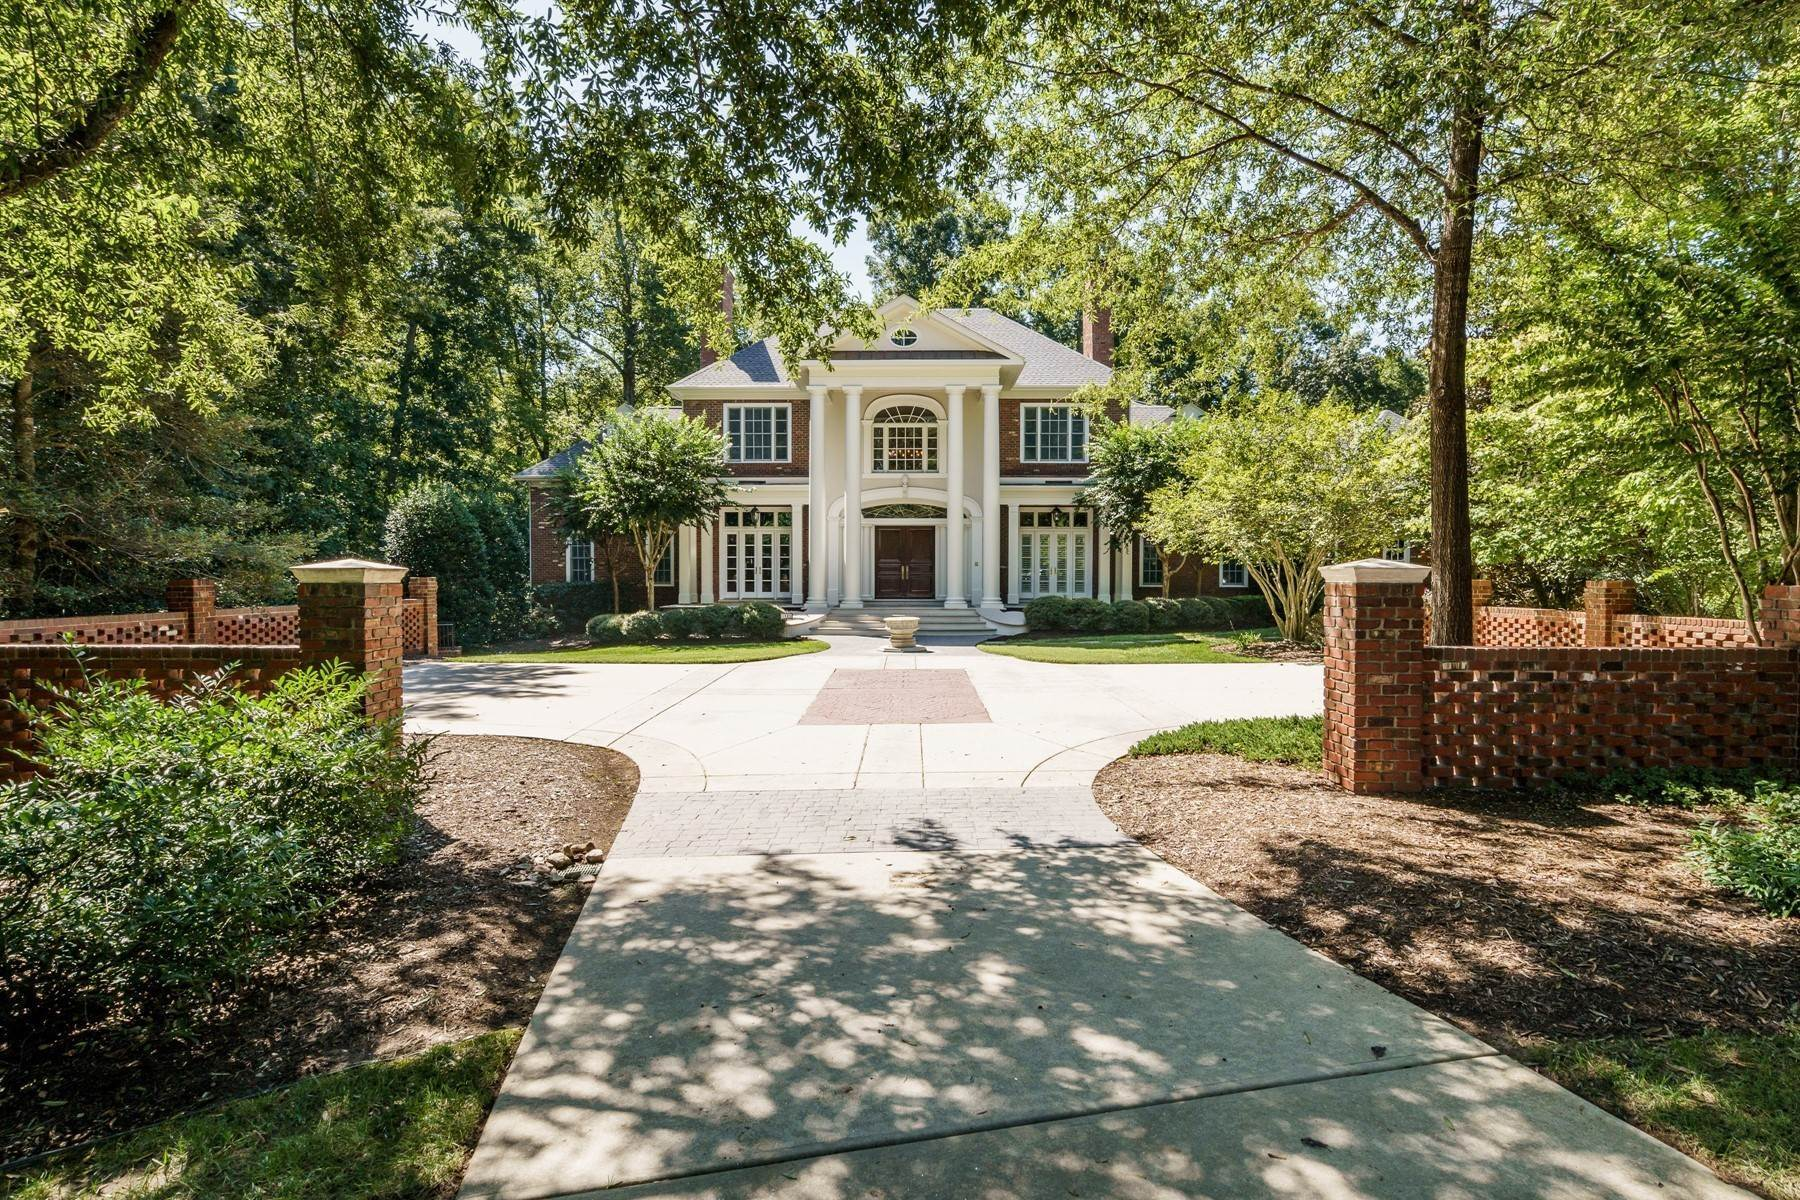 Single Family Homes for Sale at 1820 Oatlands Court Wake Forest, North Carolina 27587 United States